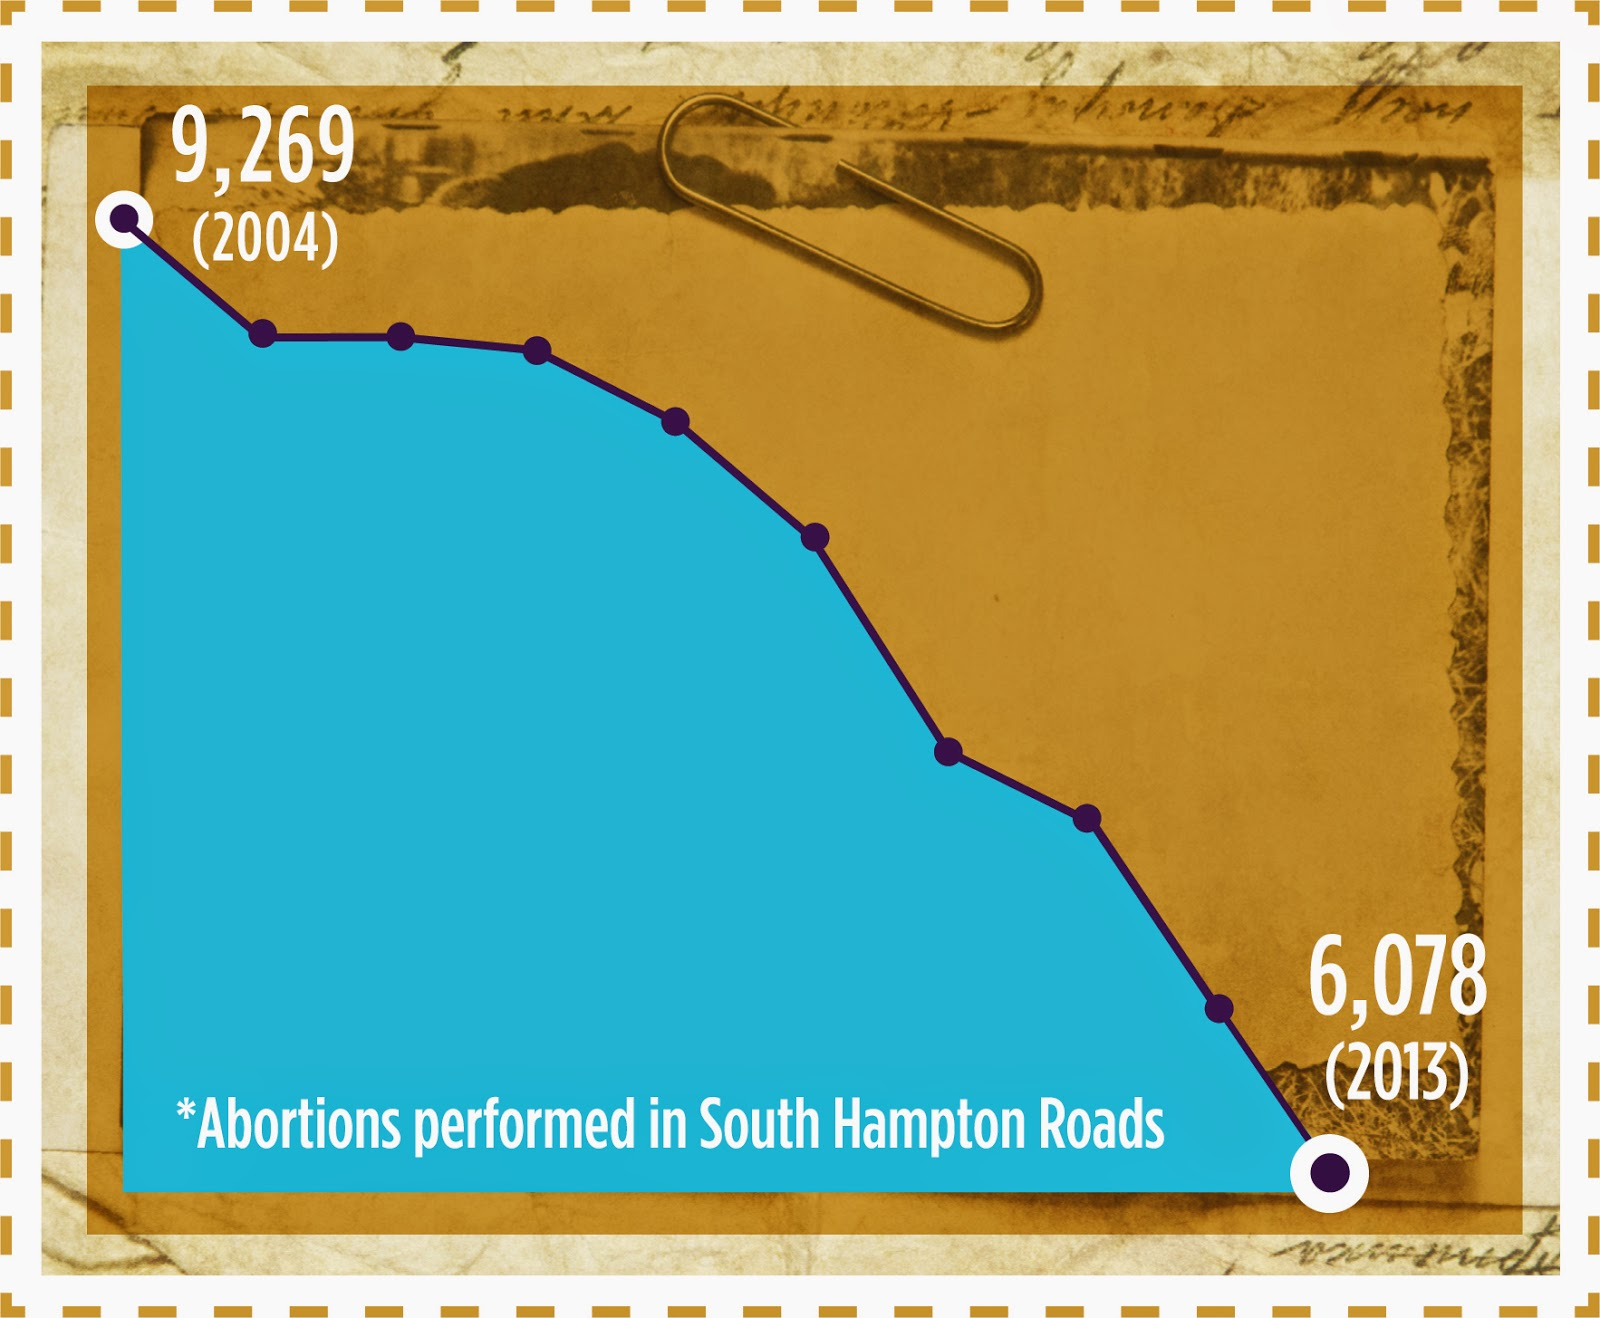 Abortions performed in South Hampton Roads 2004-2013